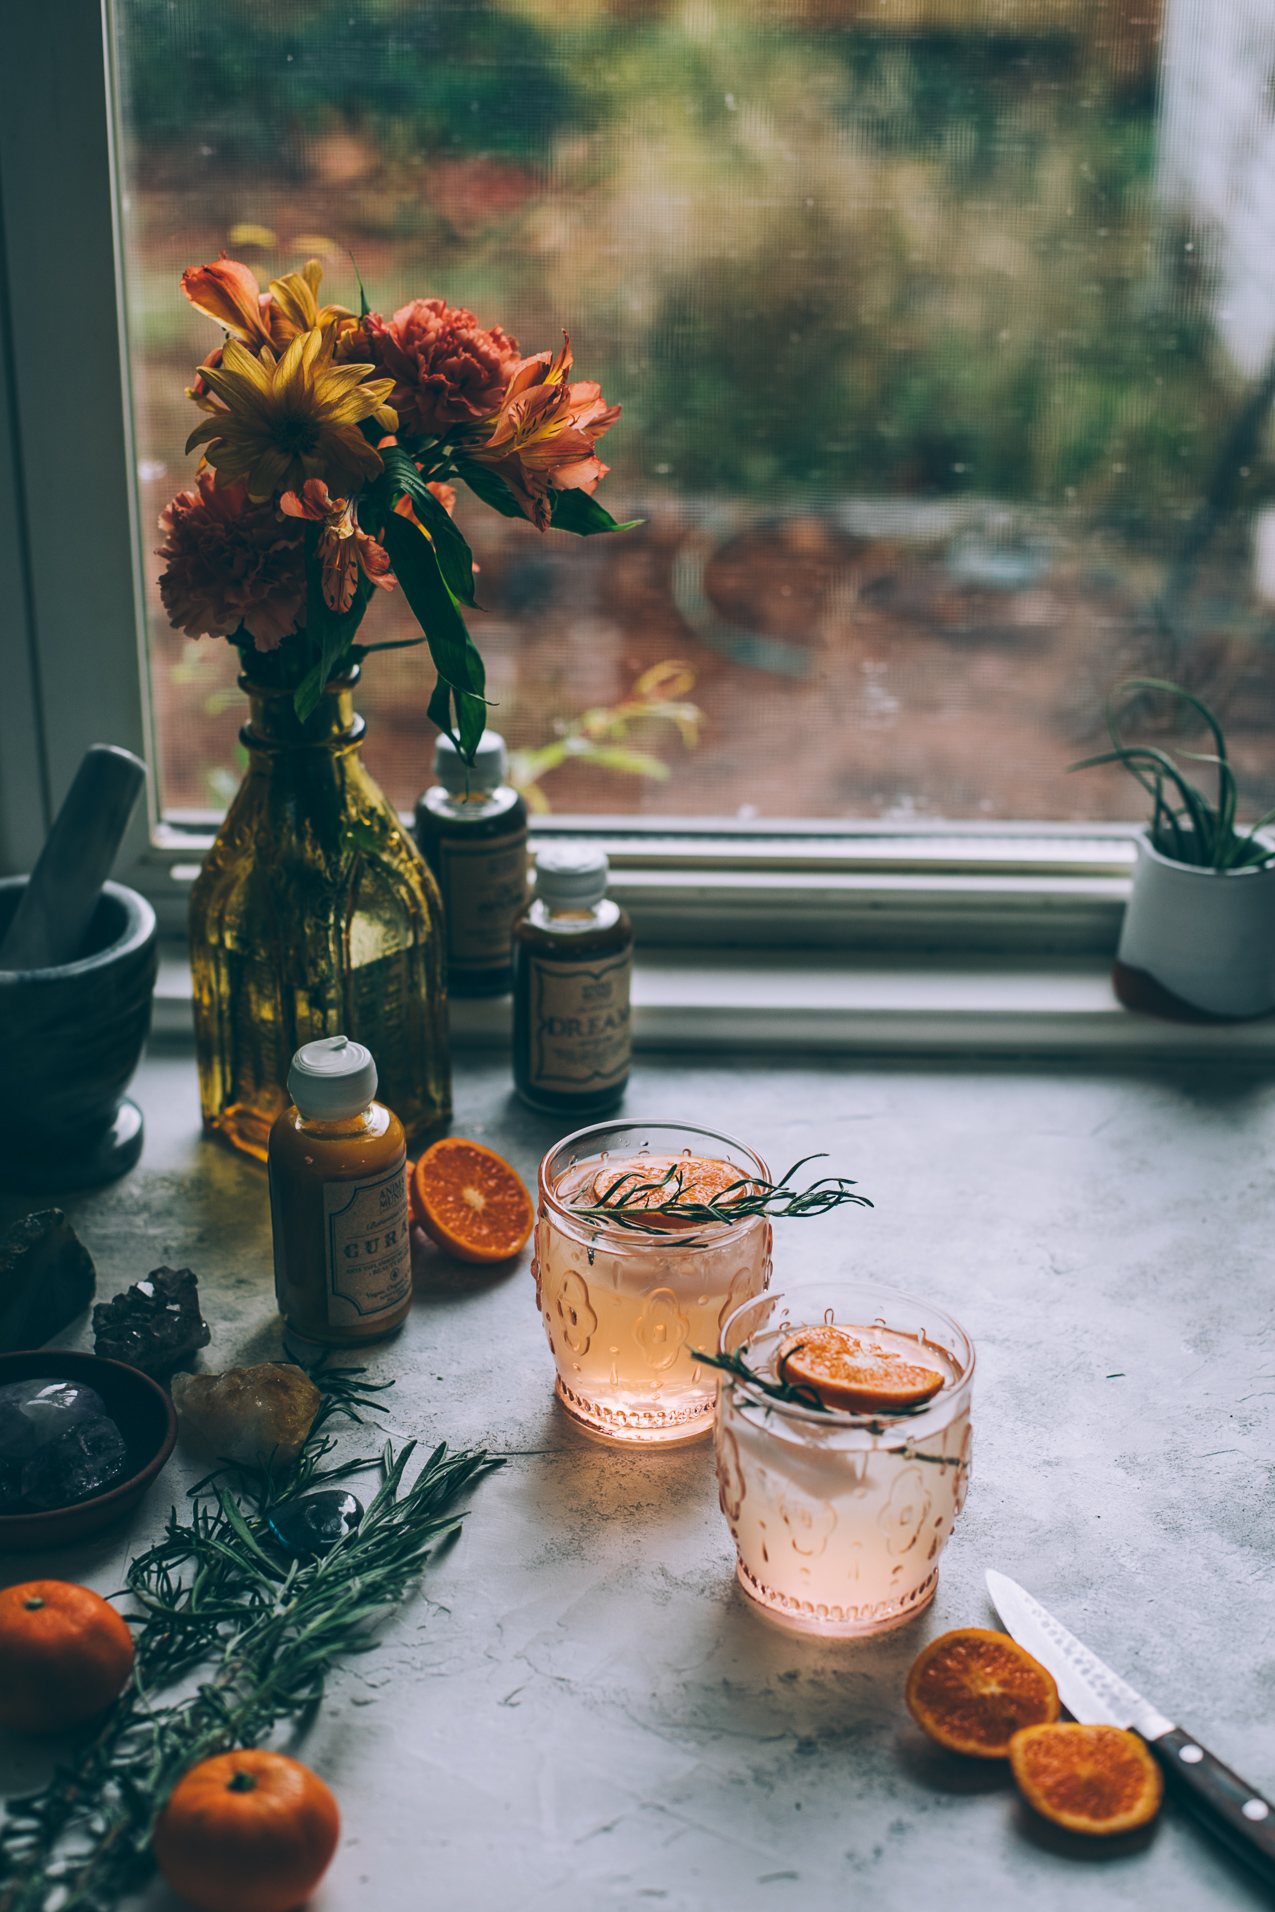 35 Simple Self Care Practices for The Holidays (for Highly